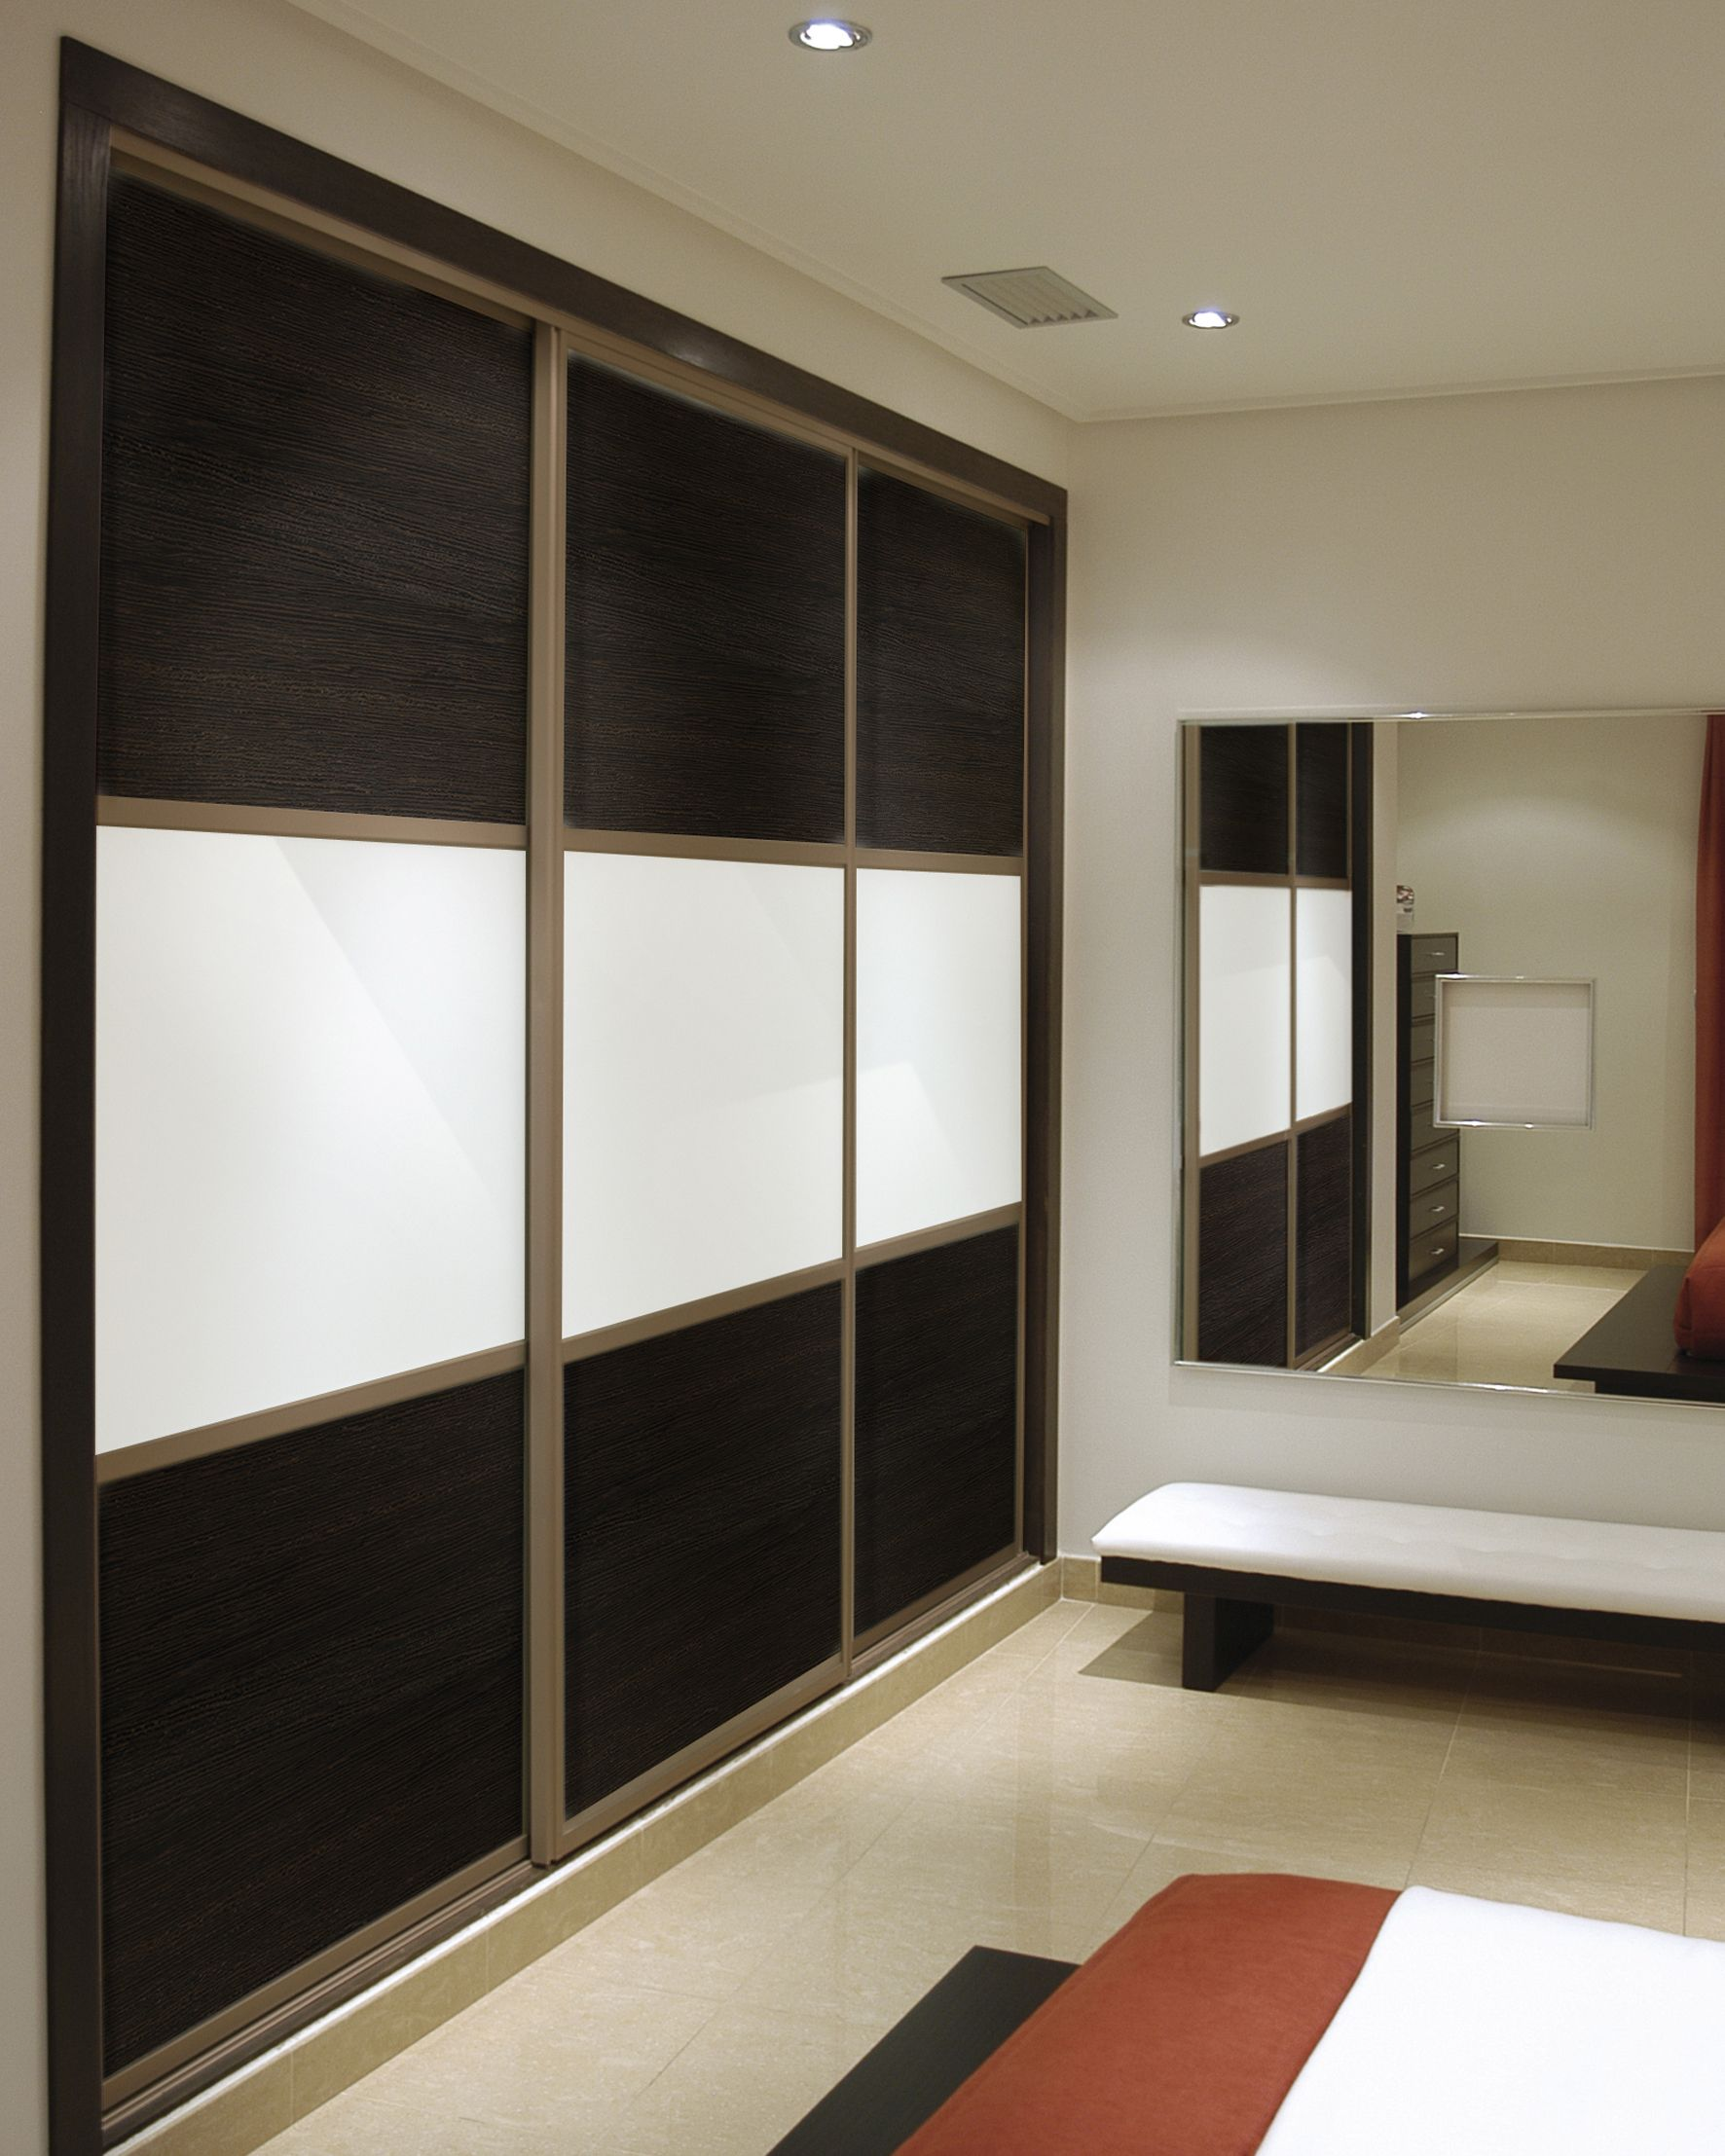 Sliding Doors by Cronos Design (With images) Sliding